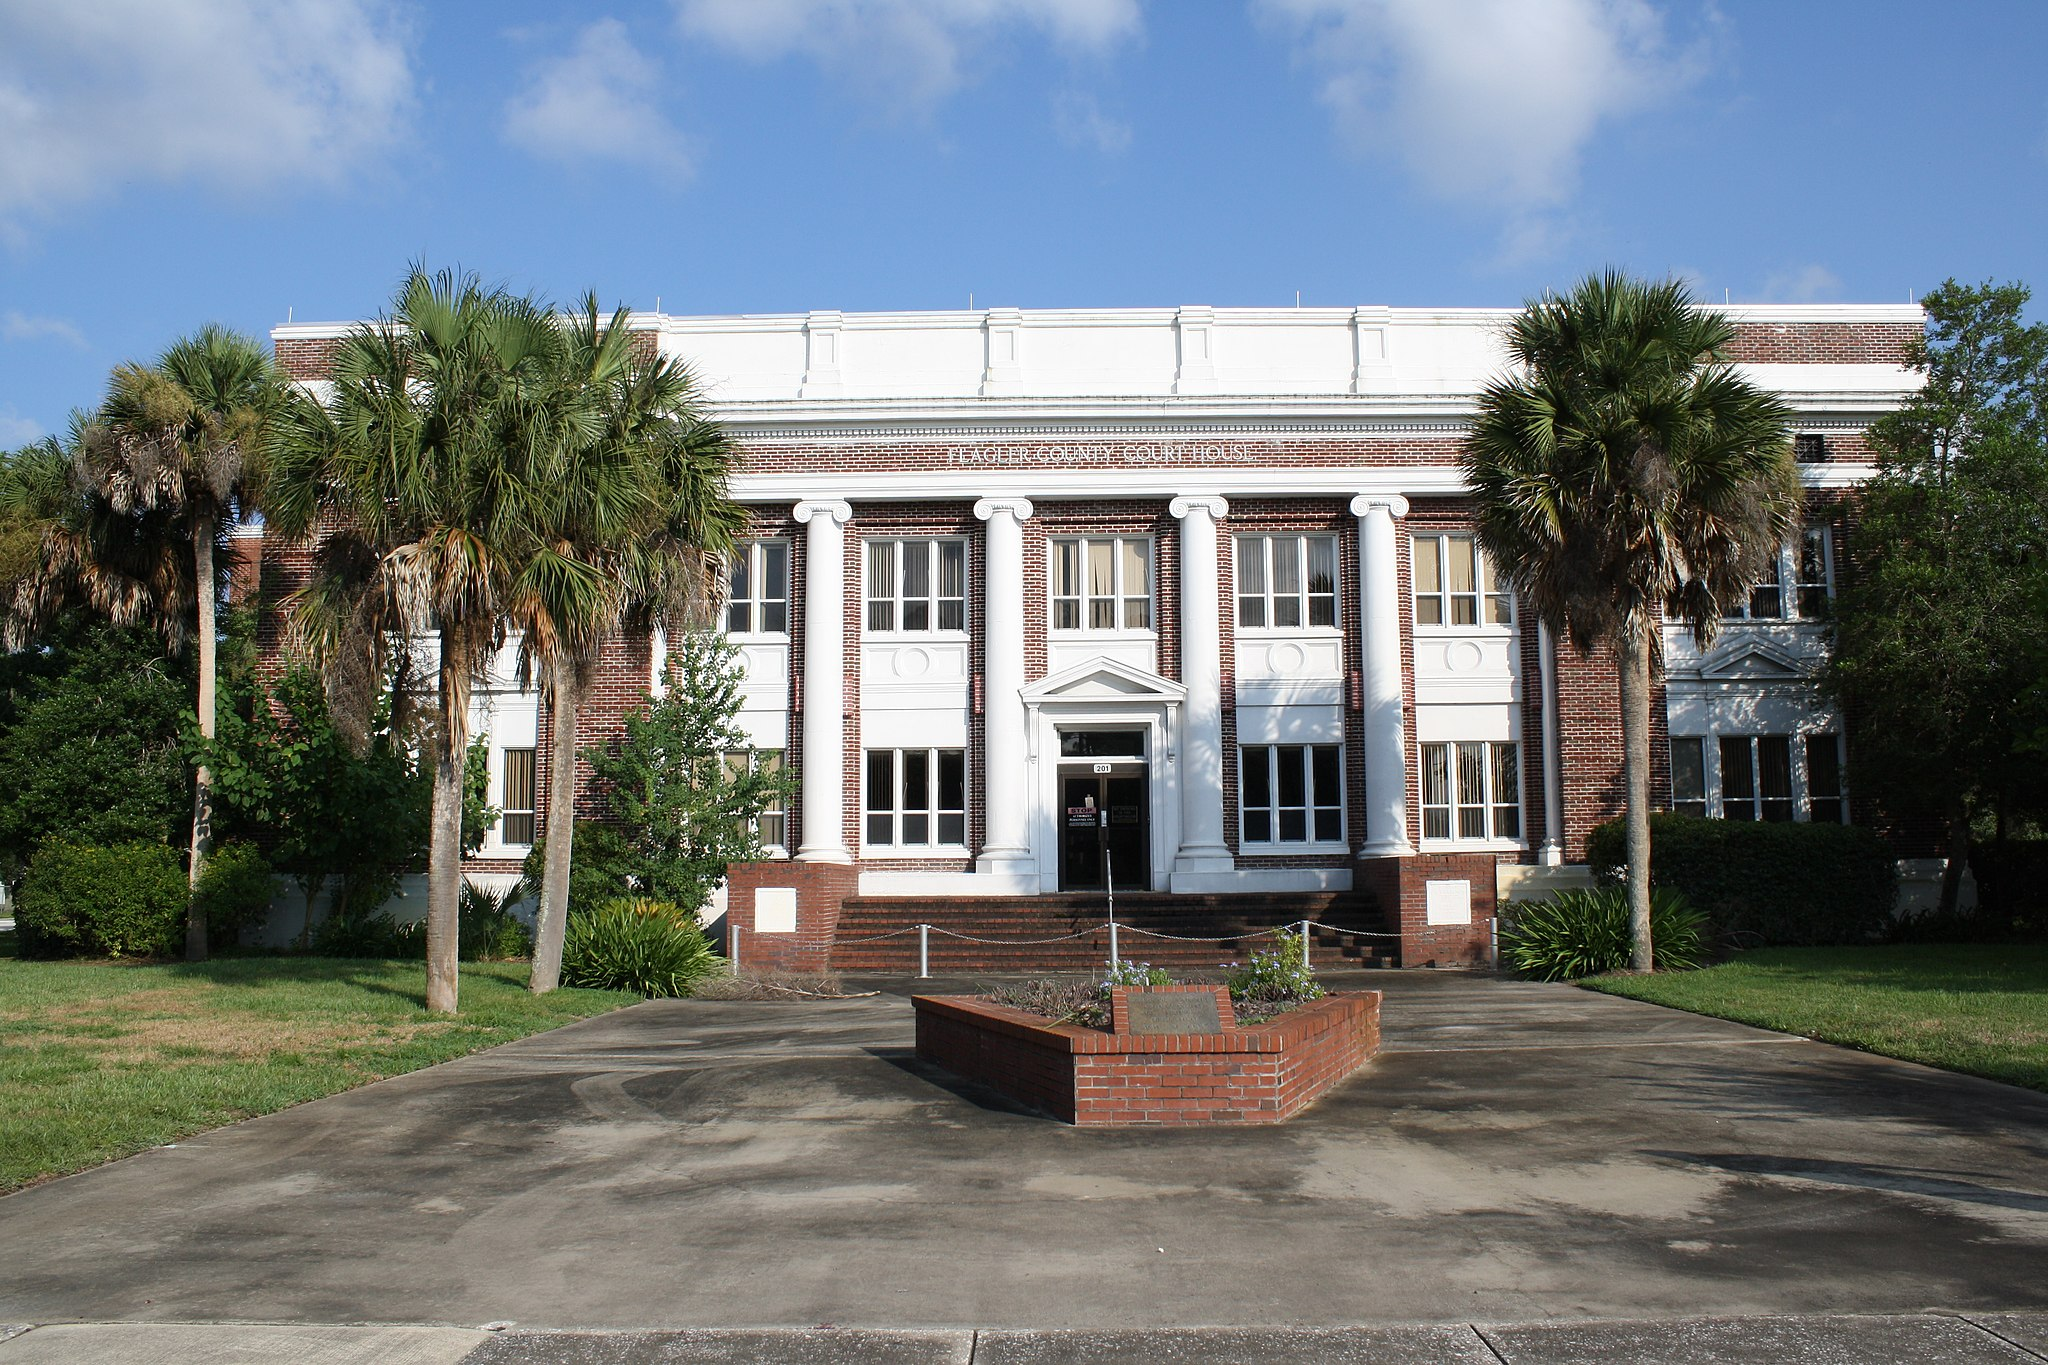 Bunnell, FL, Courthouse, Flagler County, 08-08-2010 (2)